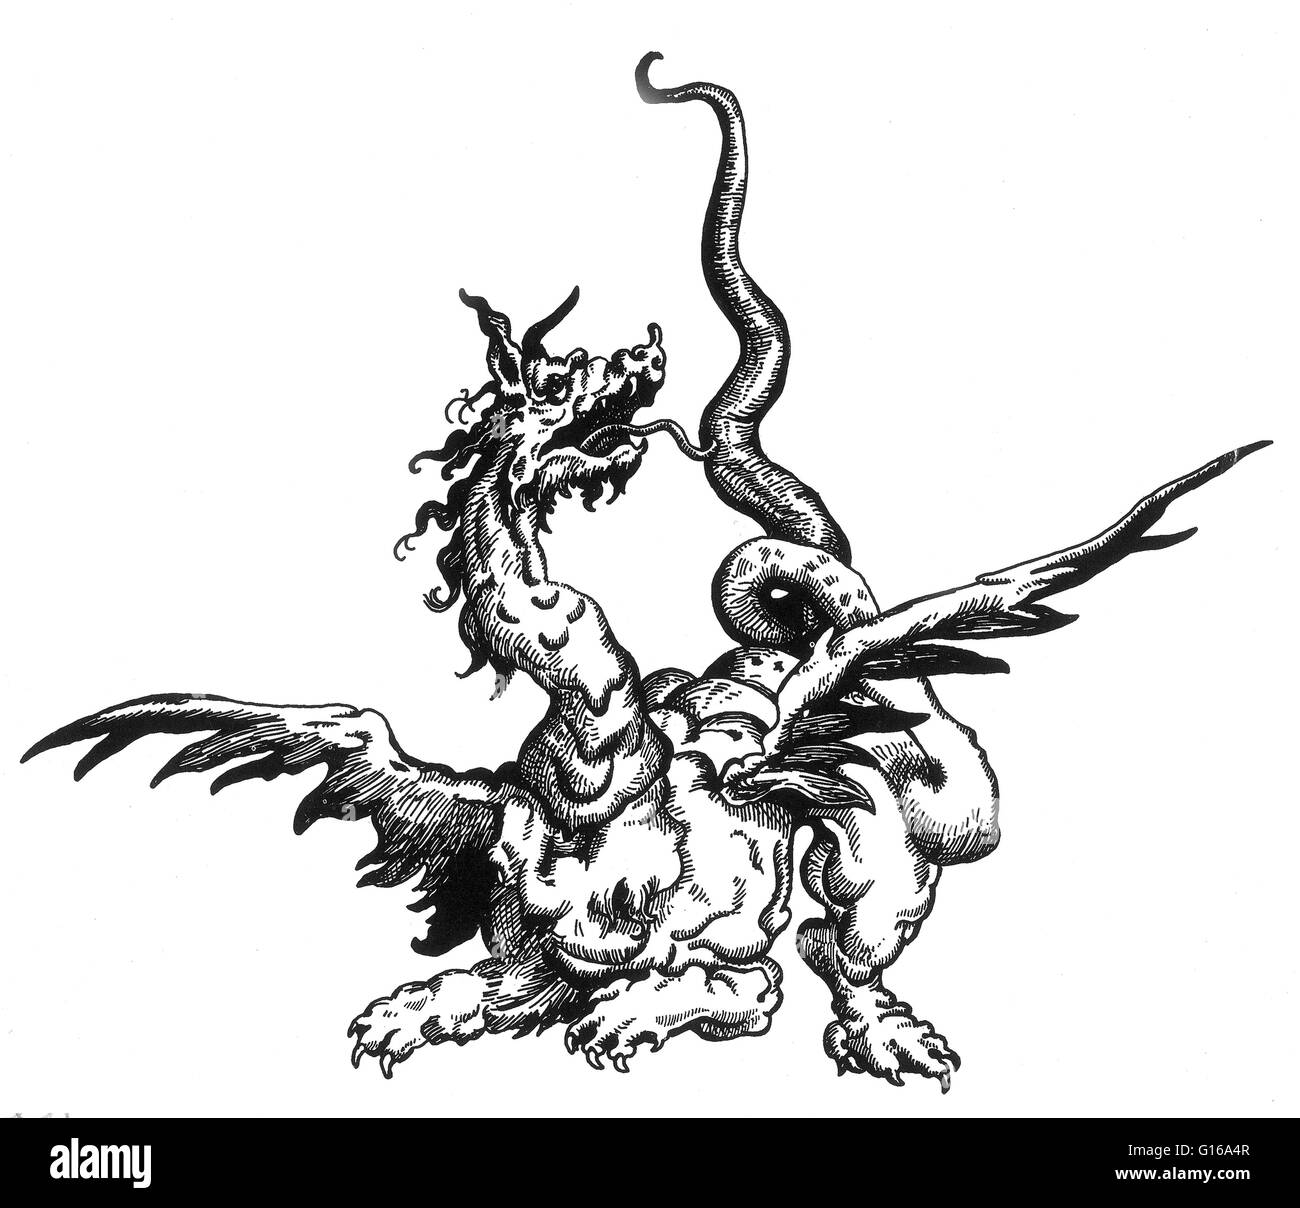 A dragon is a legendary creature, typically with serpentine or reptilian traits, that features in the myths of many - Stock Image